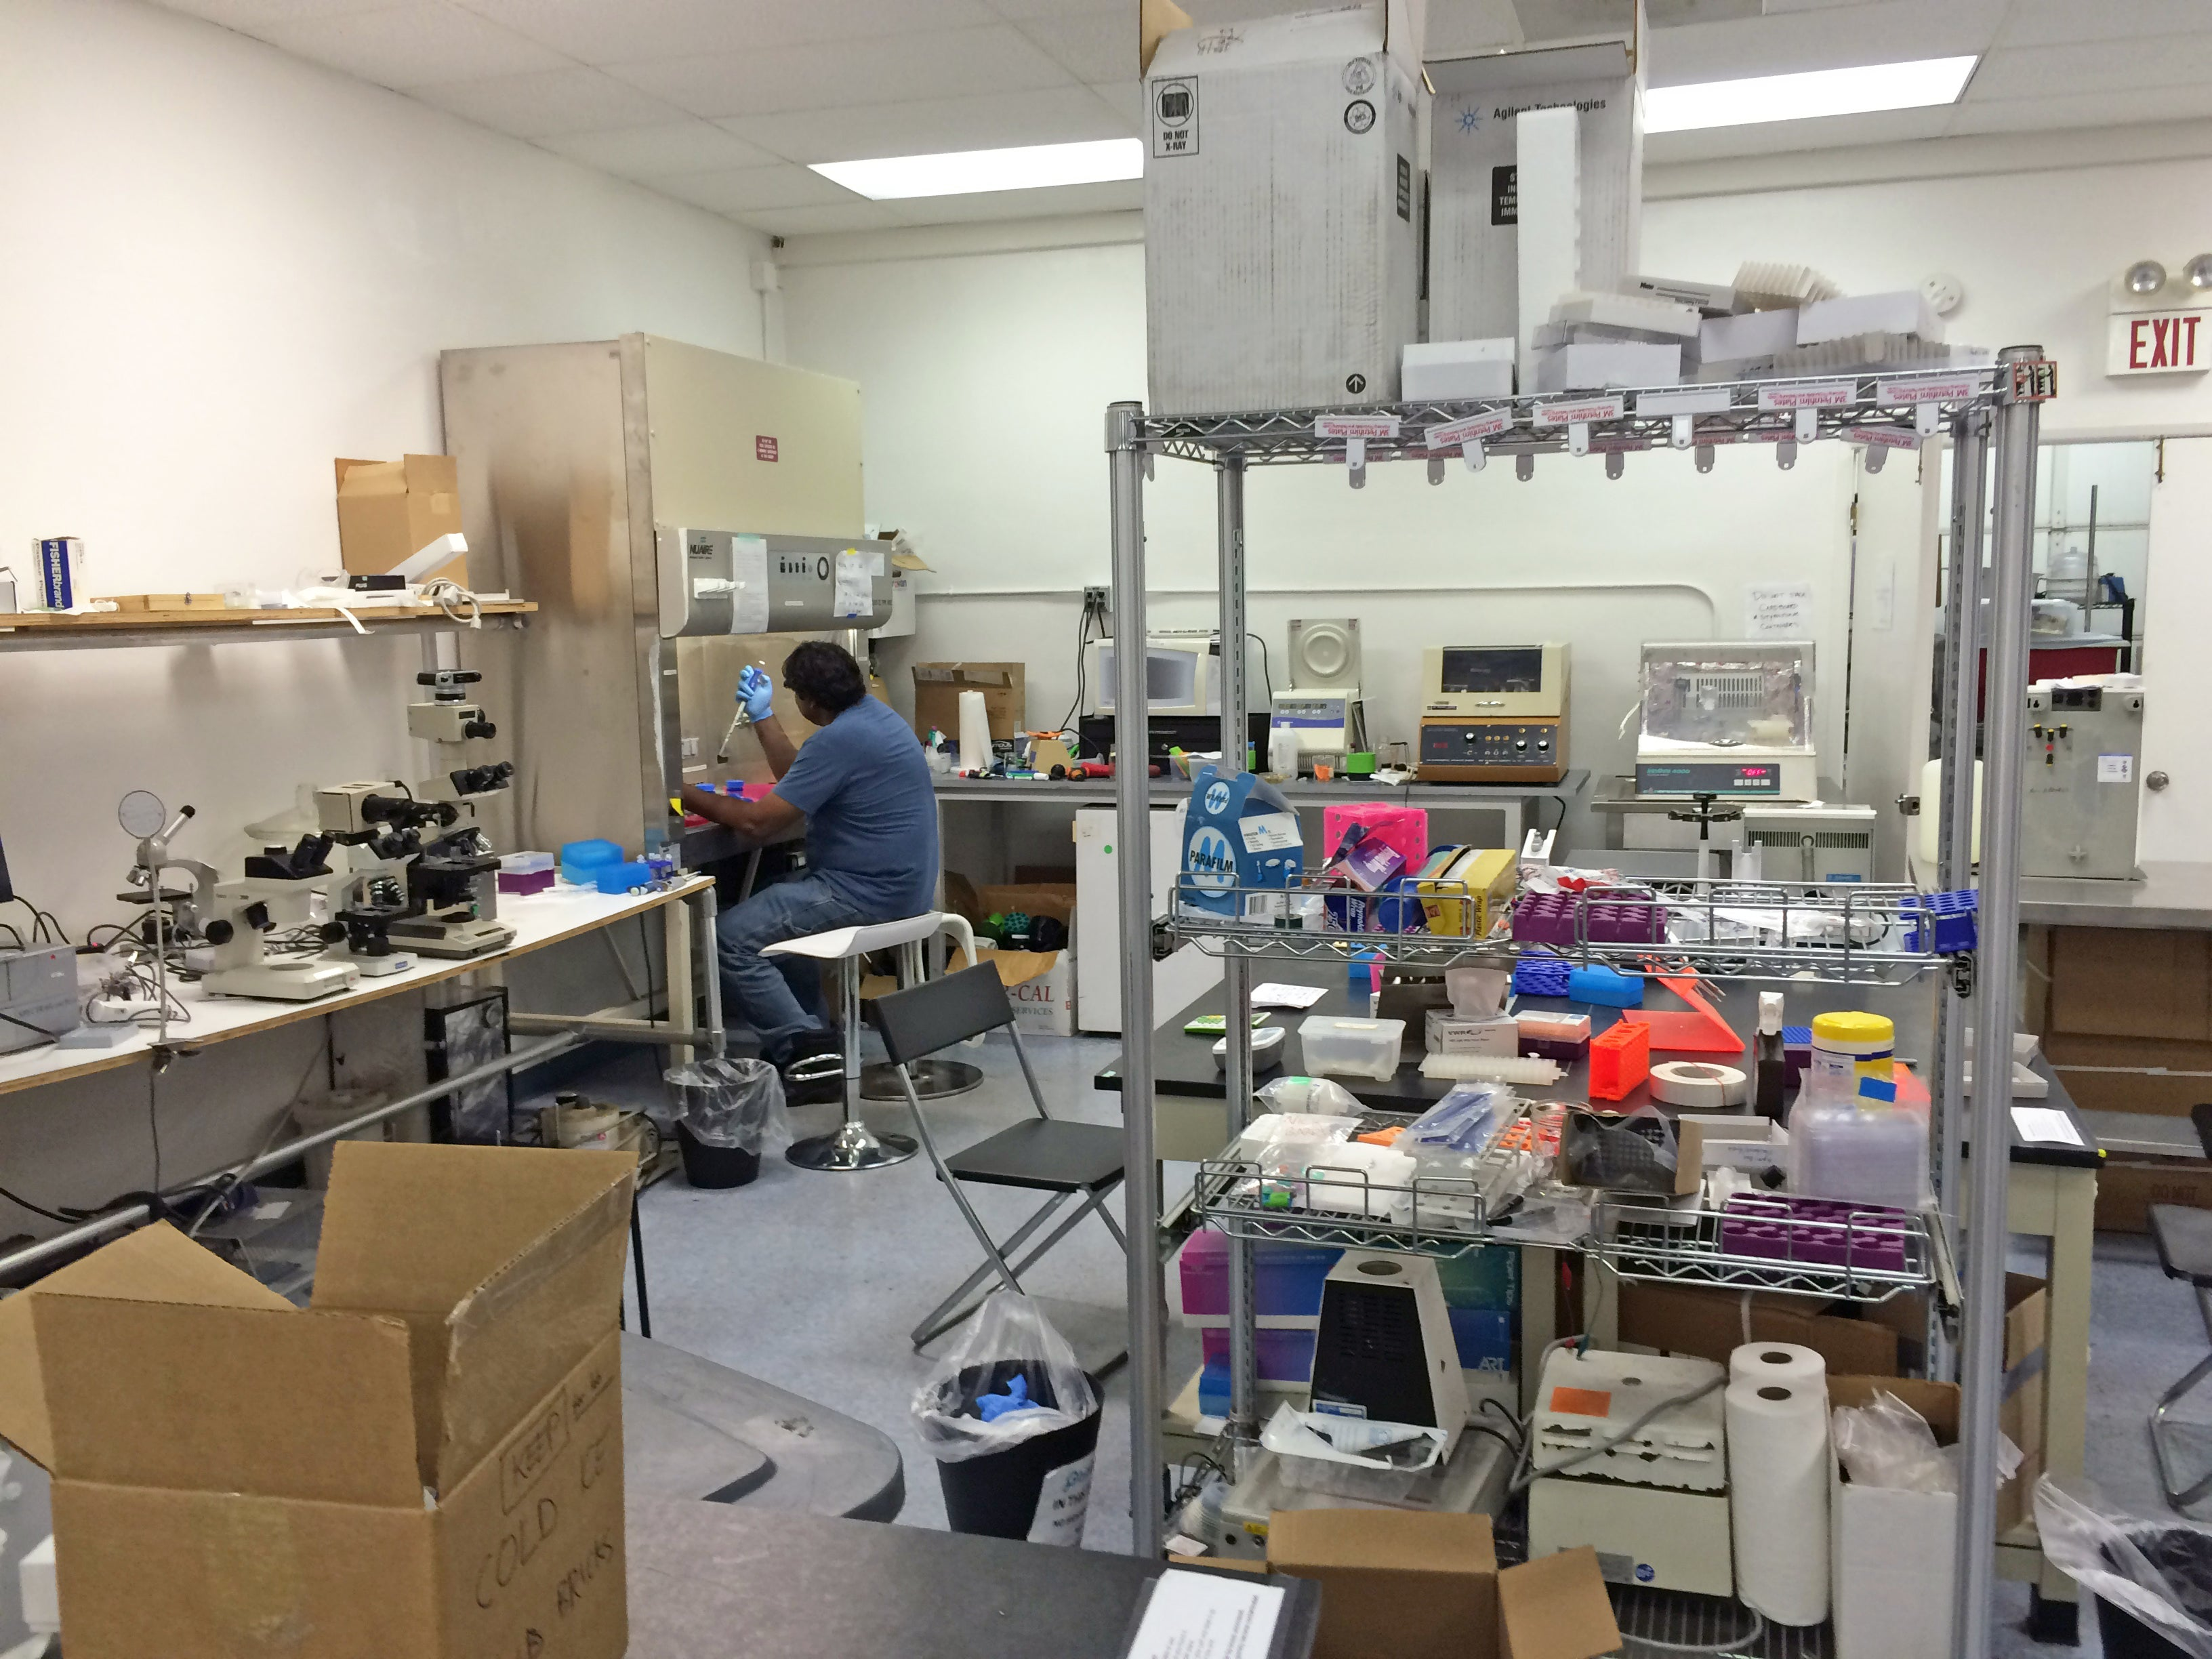 Mail Order Crispr Kits Allow Absolutely Anyone To Hack Dna It S Not Quite A Diy Echo Box For Dummies Scientist Johan Sosa Works With In Community Lab Biocurious Sunnyvale California Credit Annie Sneed